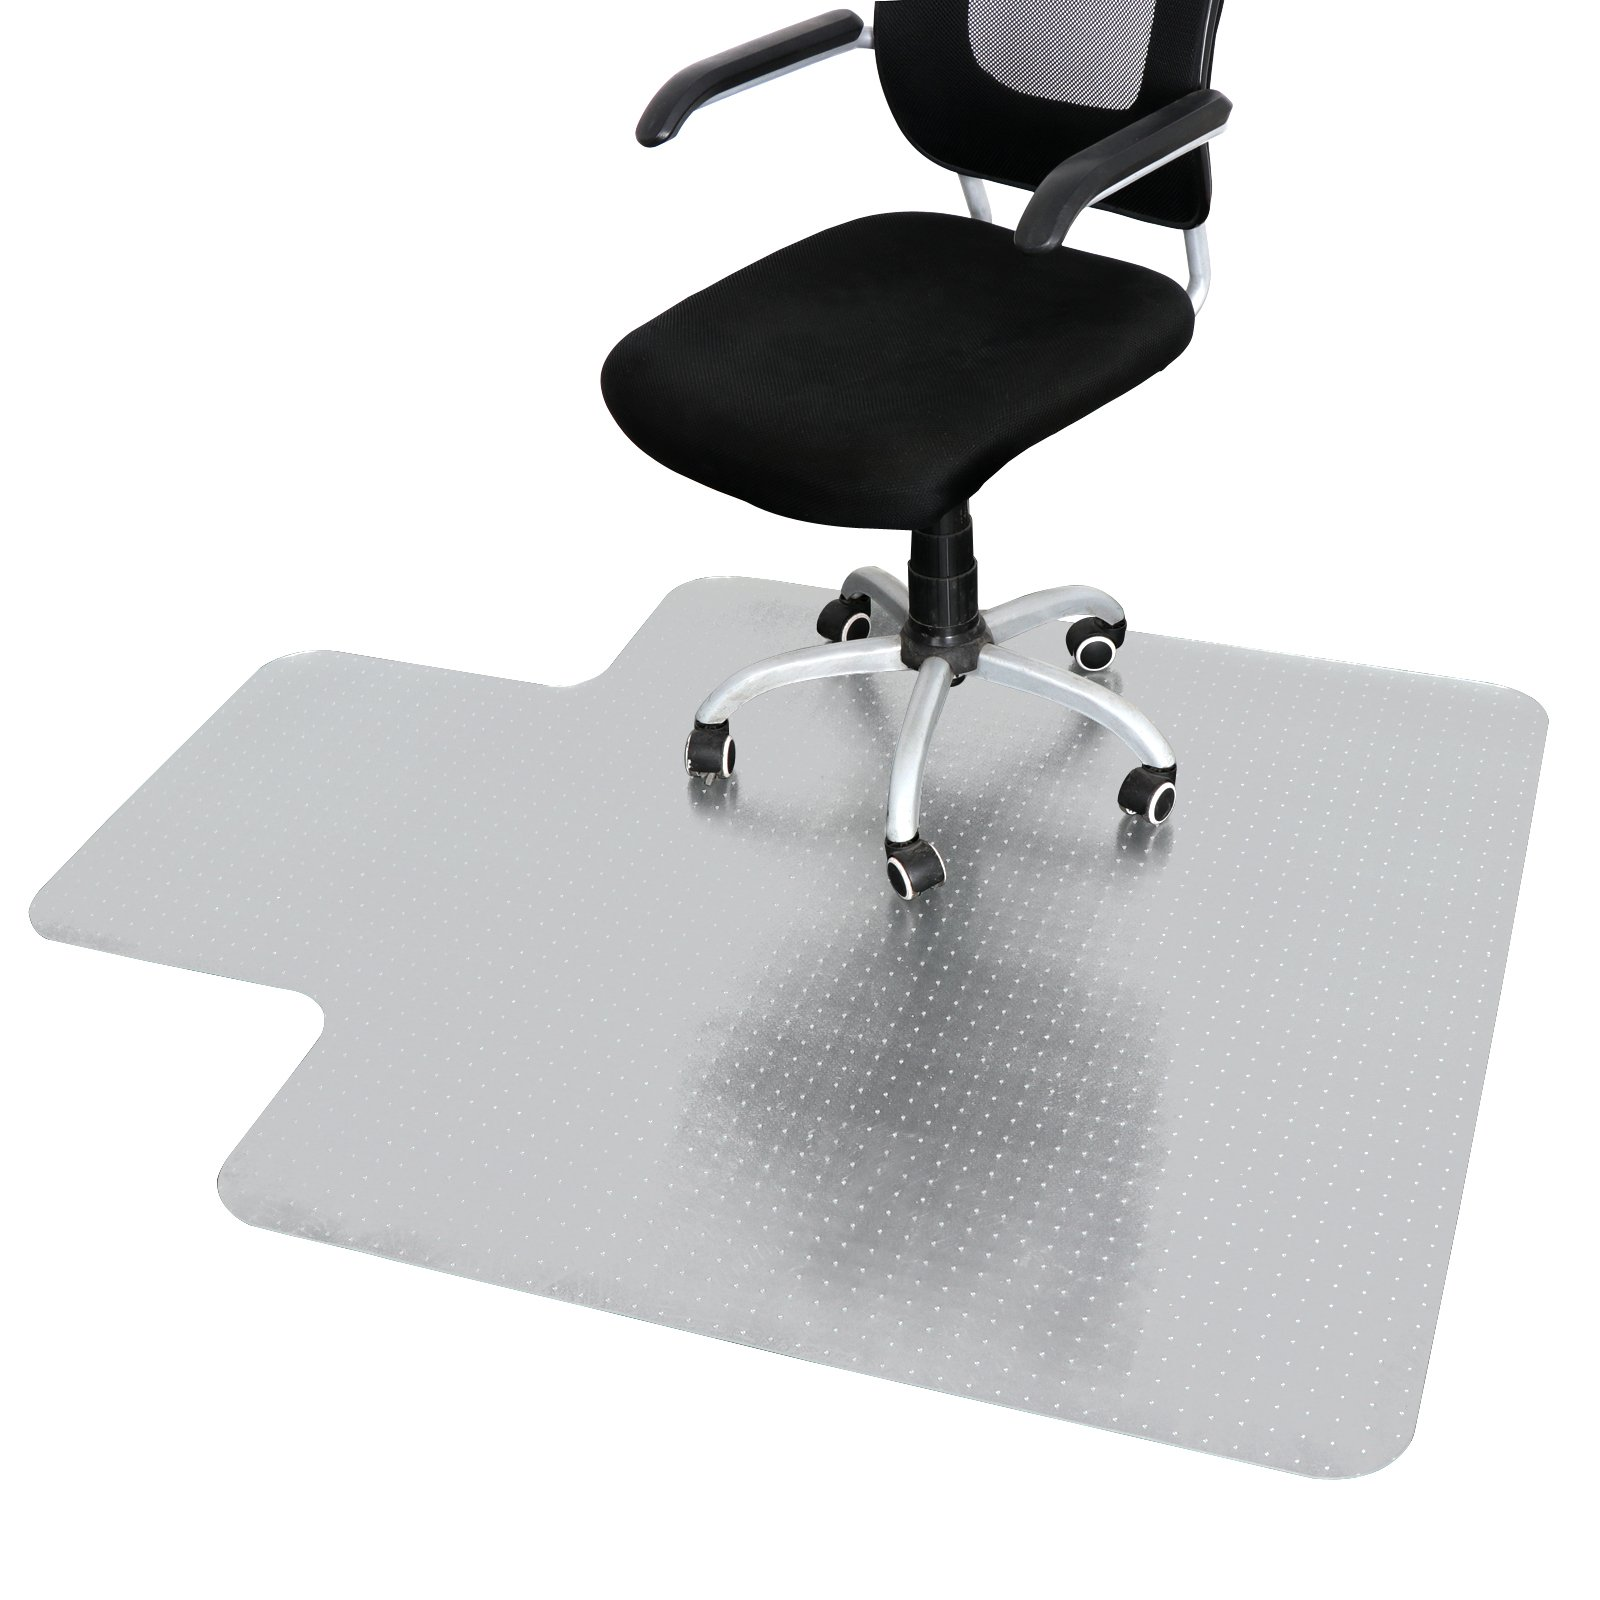 48'' X 60'' Multiple Sizes PVC Desk Chair Mat Carpet Transparent Hardwood Floor Protector Clear Vinyl Plastic Hard Floors Runner with Lip for Low/Medium Pile Carpets at Home,Office